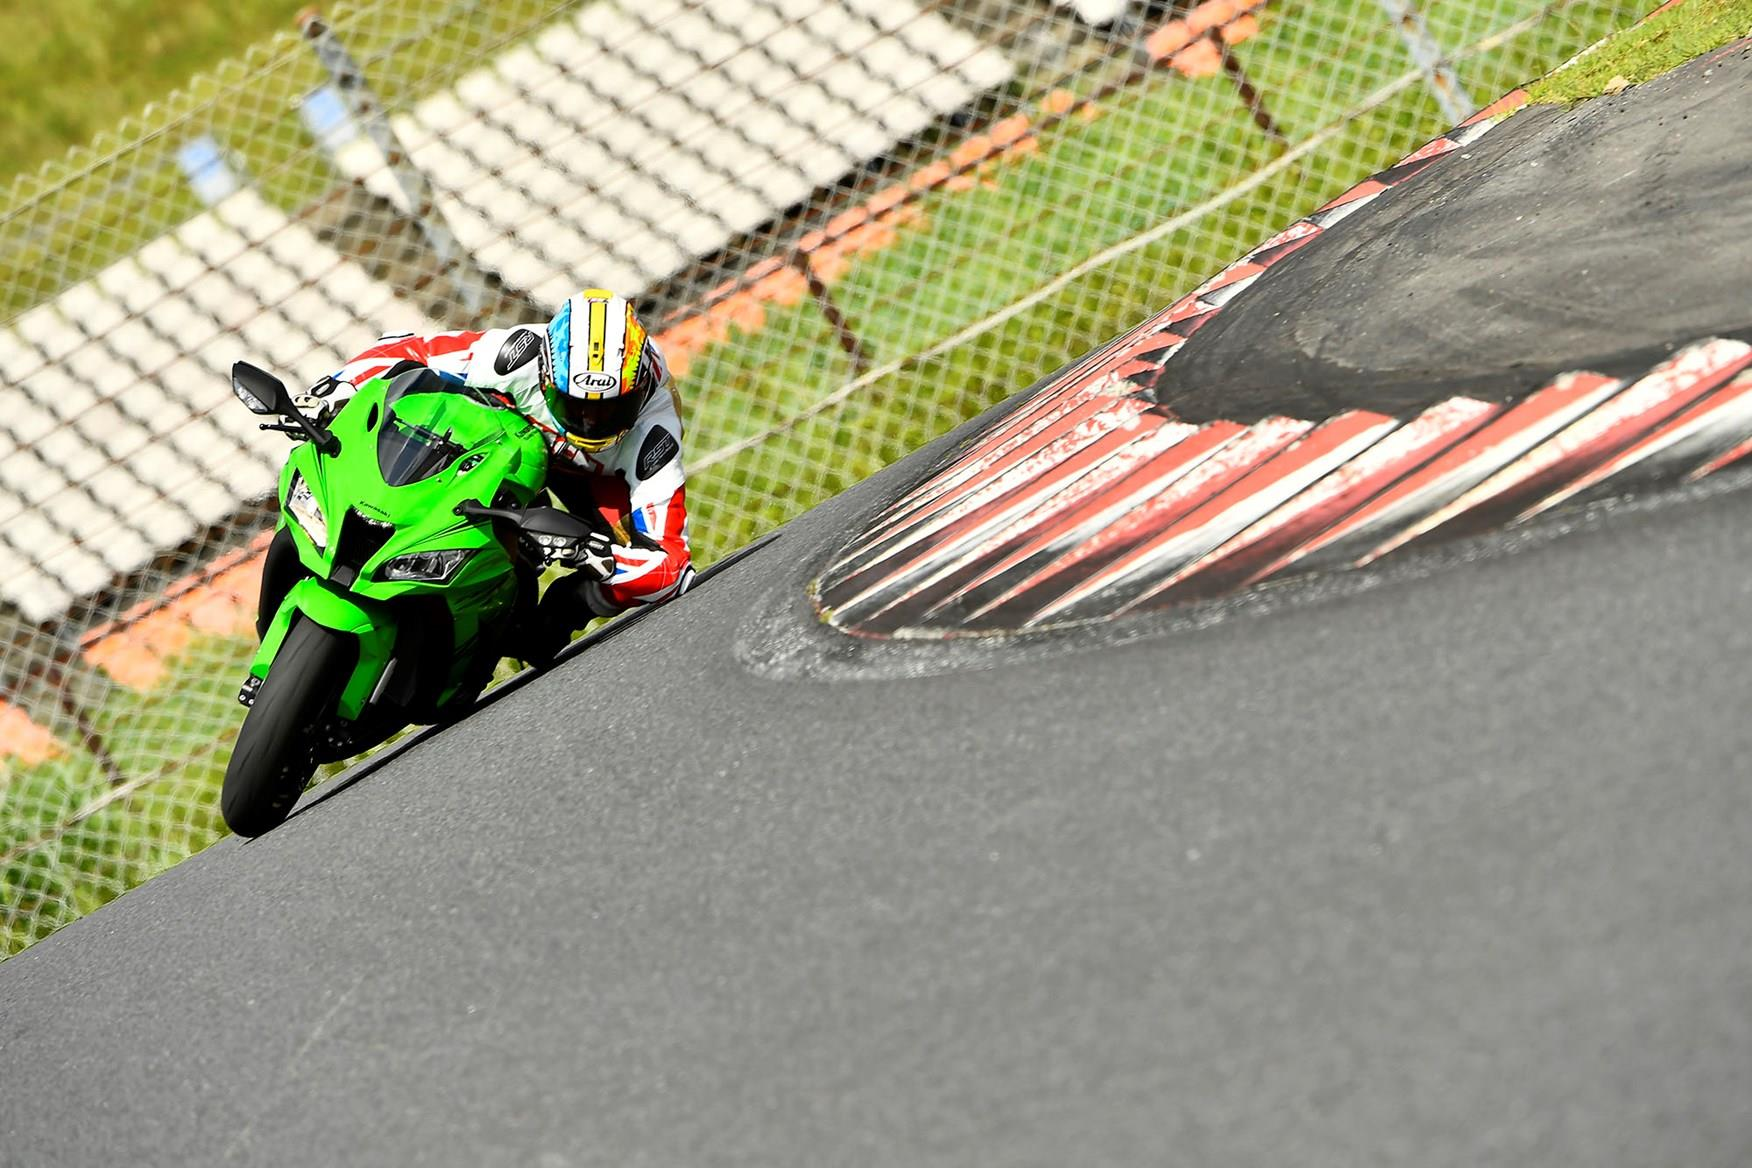 MCN's Adam Child gets his elbow down on the Kawasaki ZX-10RR